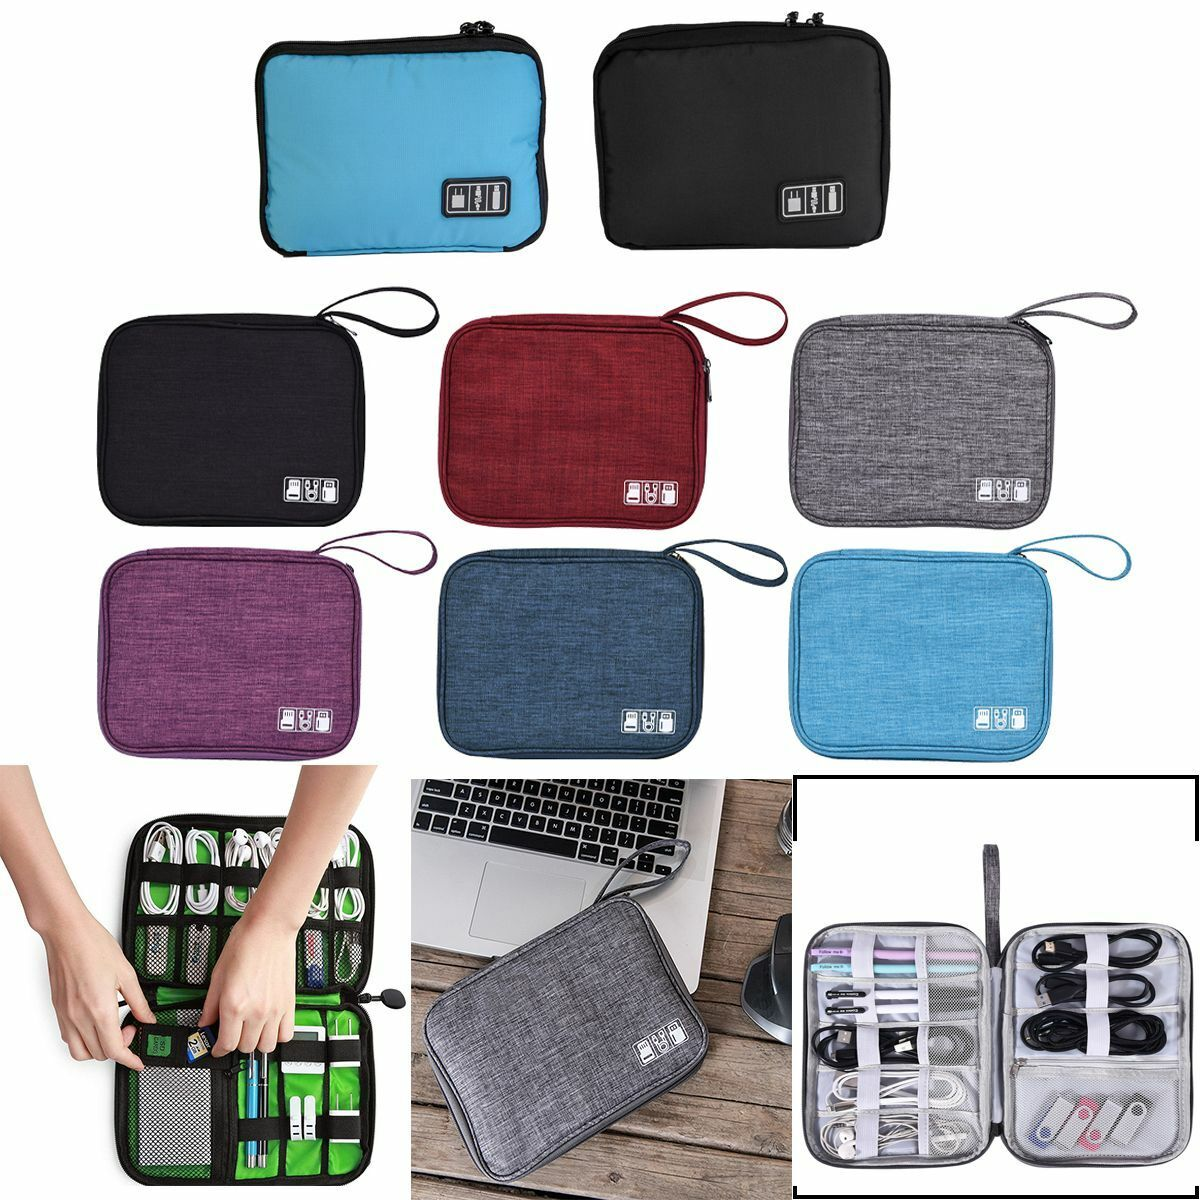 Electronic Organizer Power Bank Tablet Up to 7.9 BAGSMART Large Cable Storage Bag Travel with Removable Grid-IT Organzier for Cables Adpater